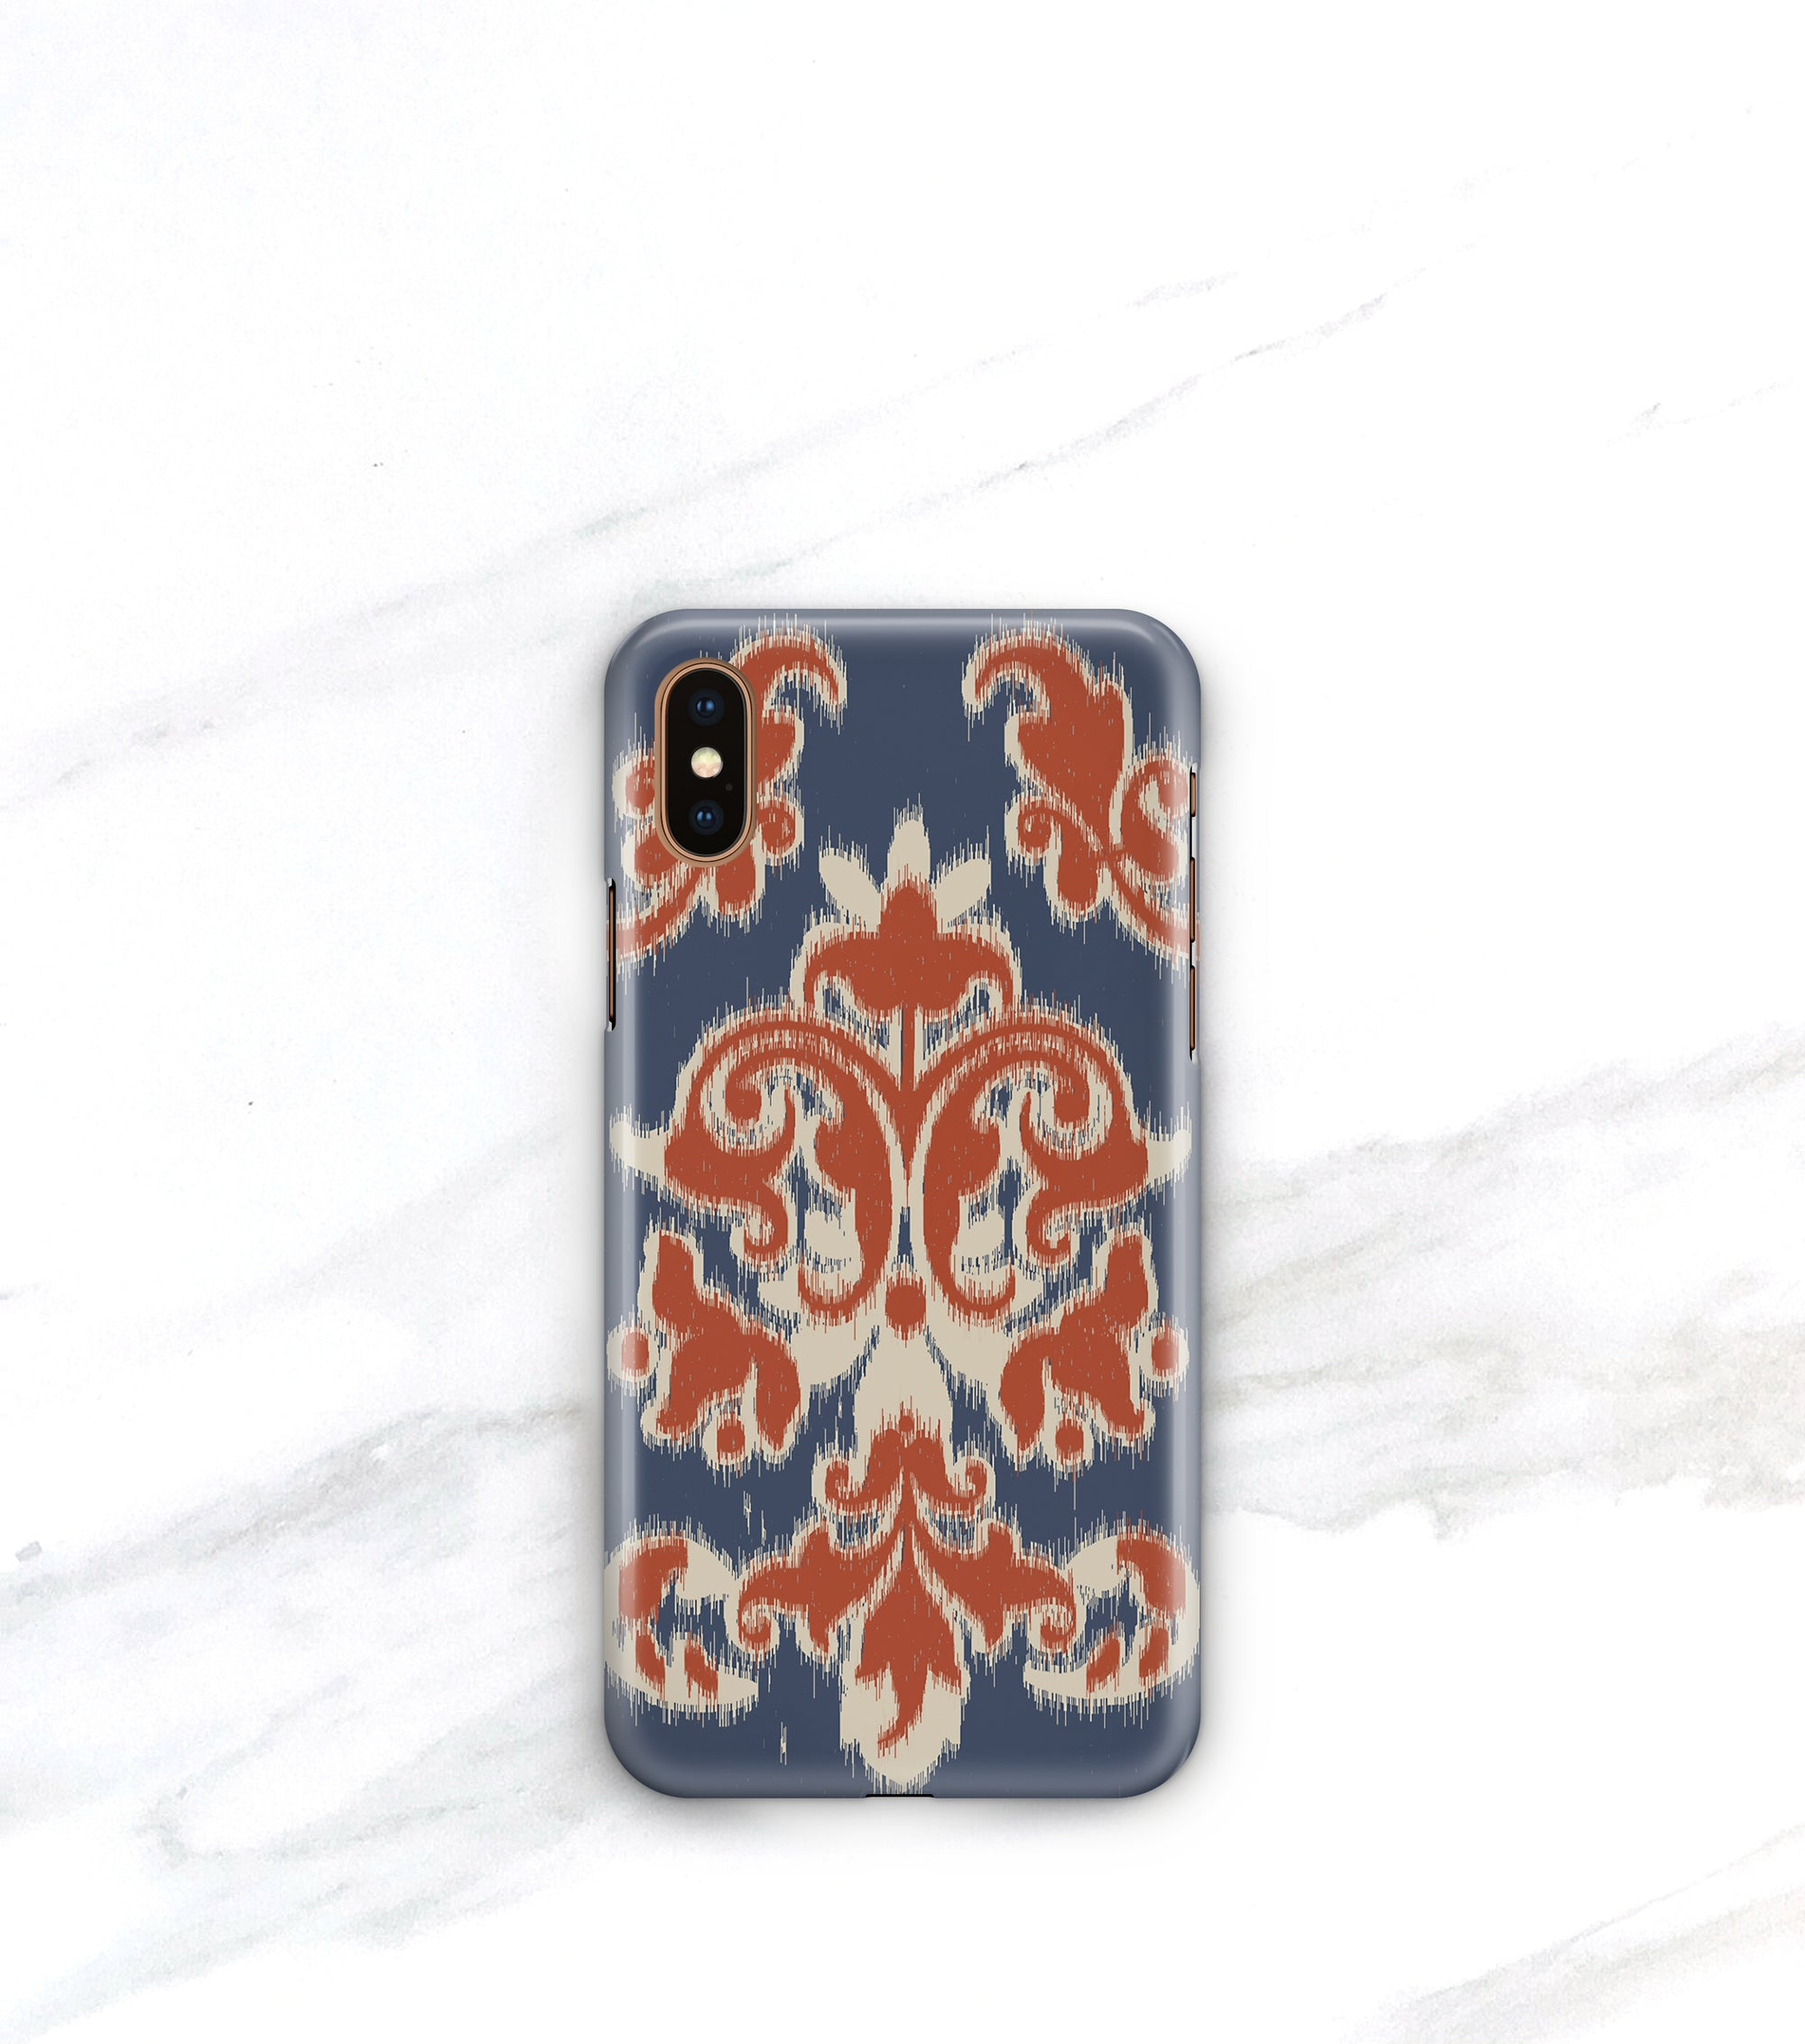 Casual cool iPhone xs case in Ikat print, blue, tan and rust red